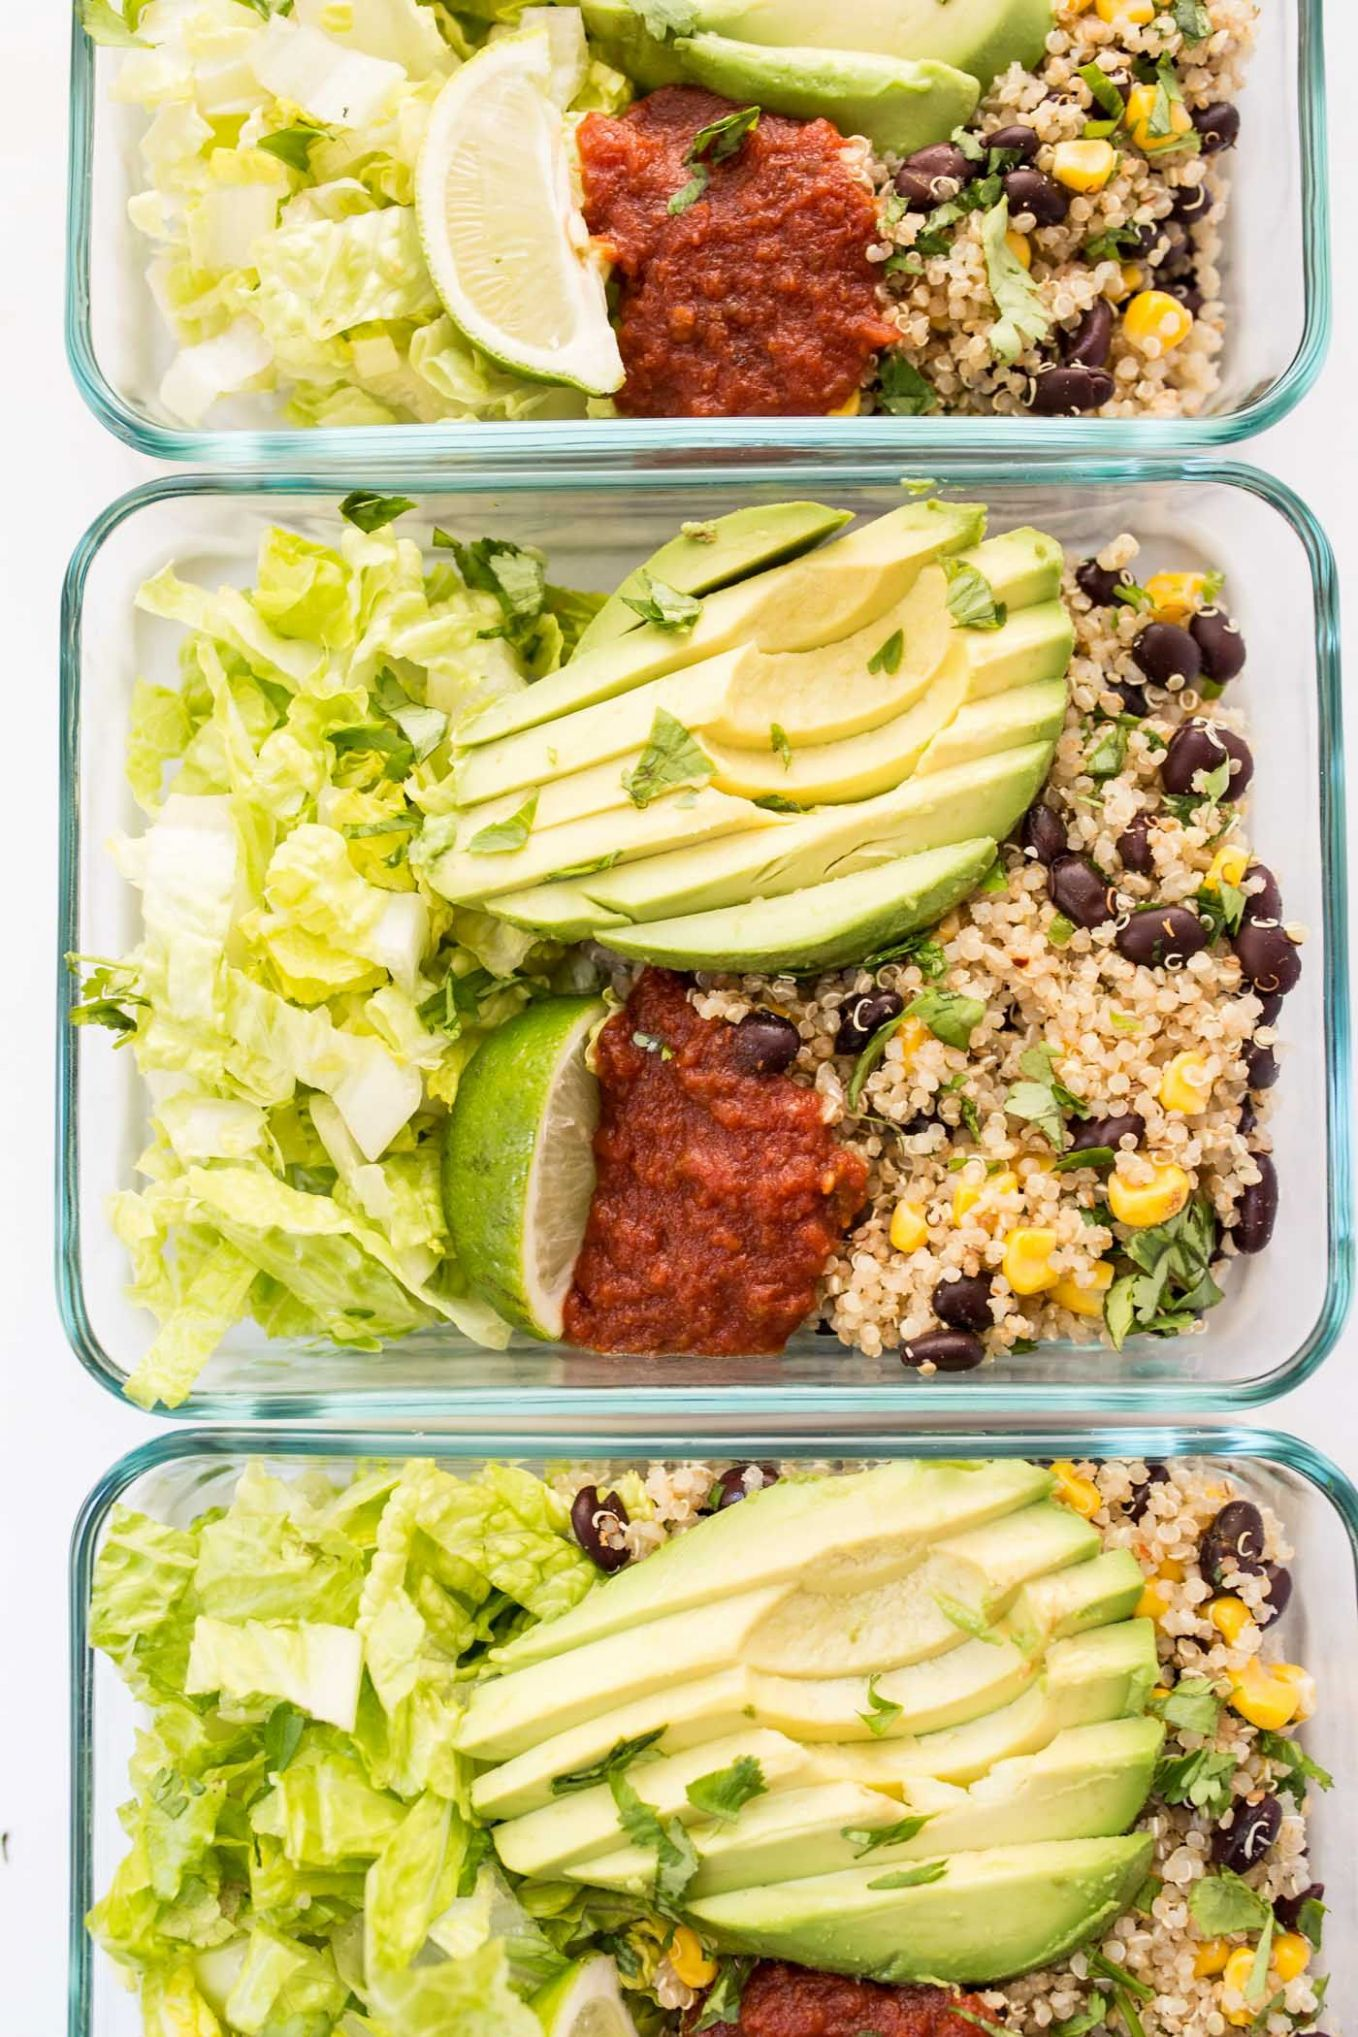 Meal-Prep Vegetarian Quinoa Burrito Bowls - Recipes Vegetarian Meals